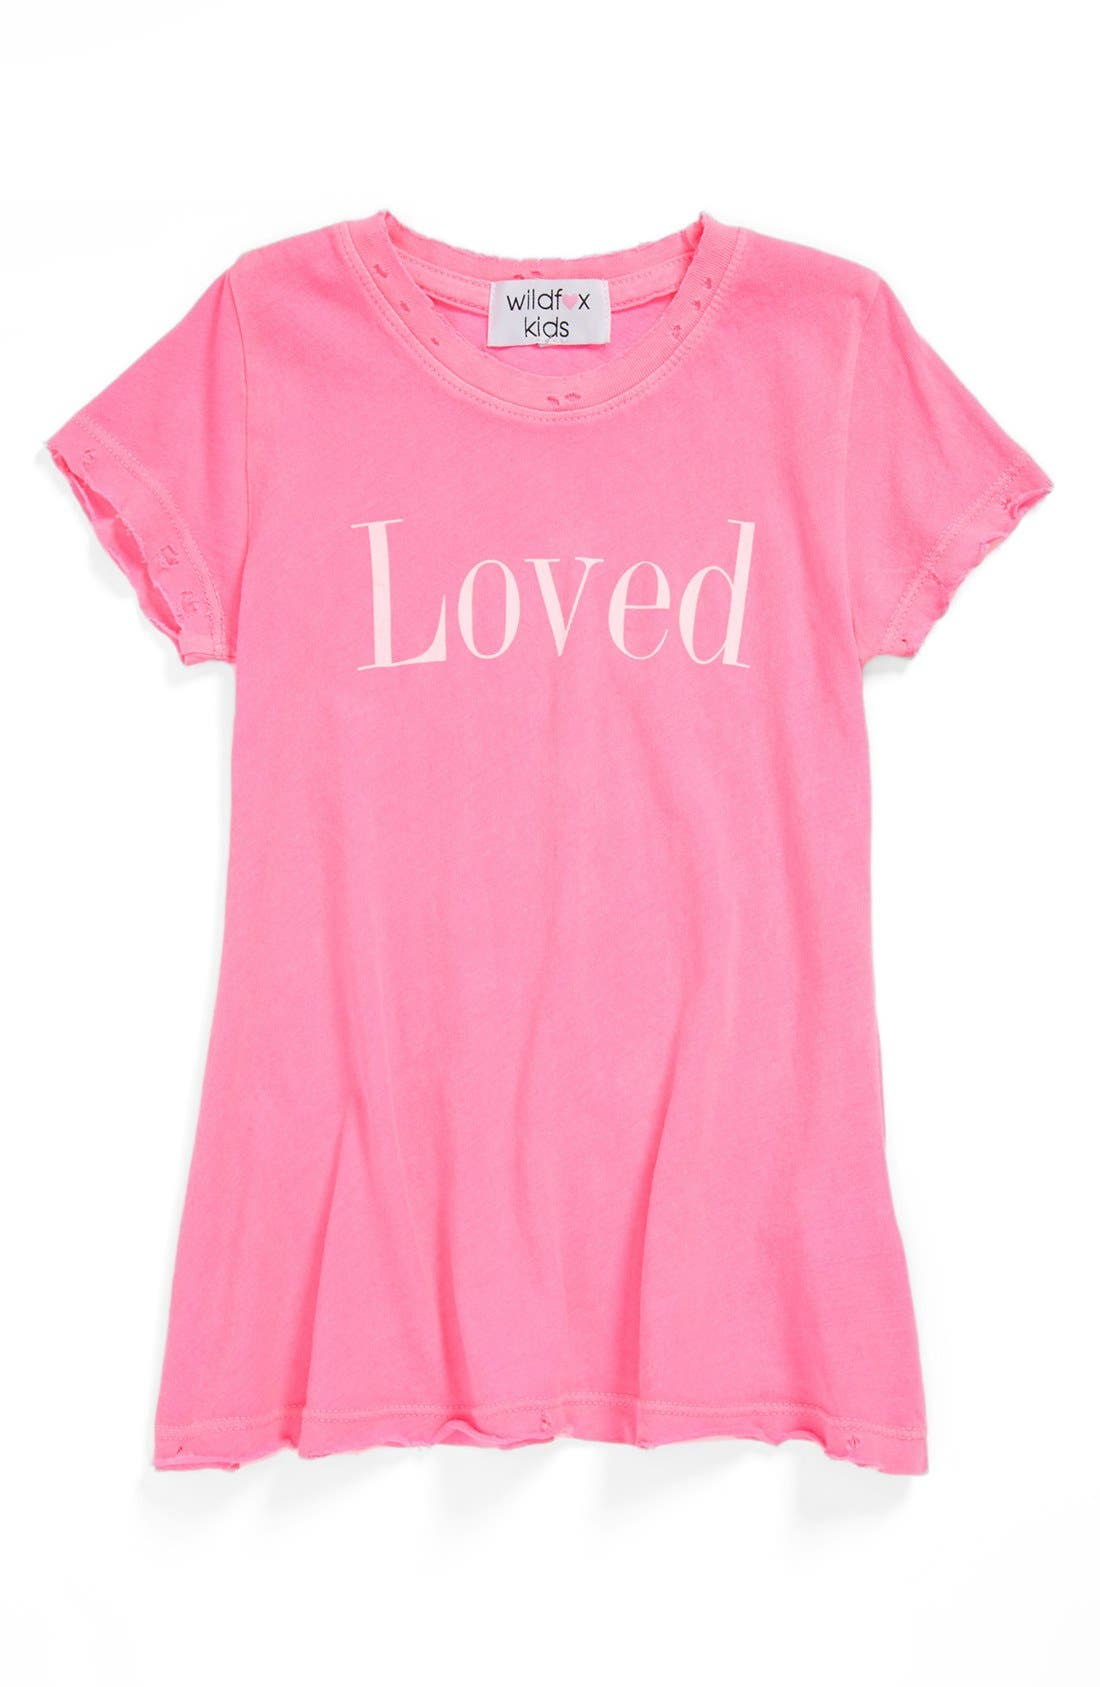 Main Image - Wildfox 'Loved' Tee (Little Girls)